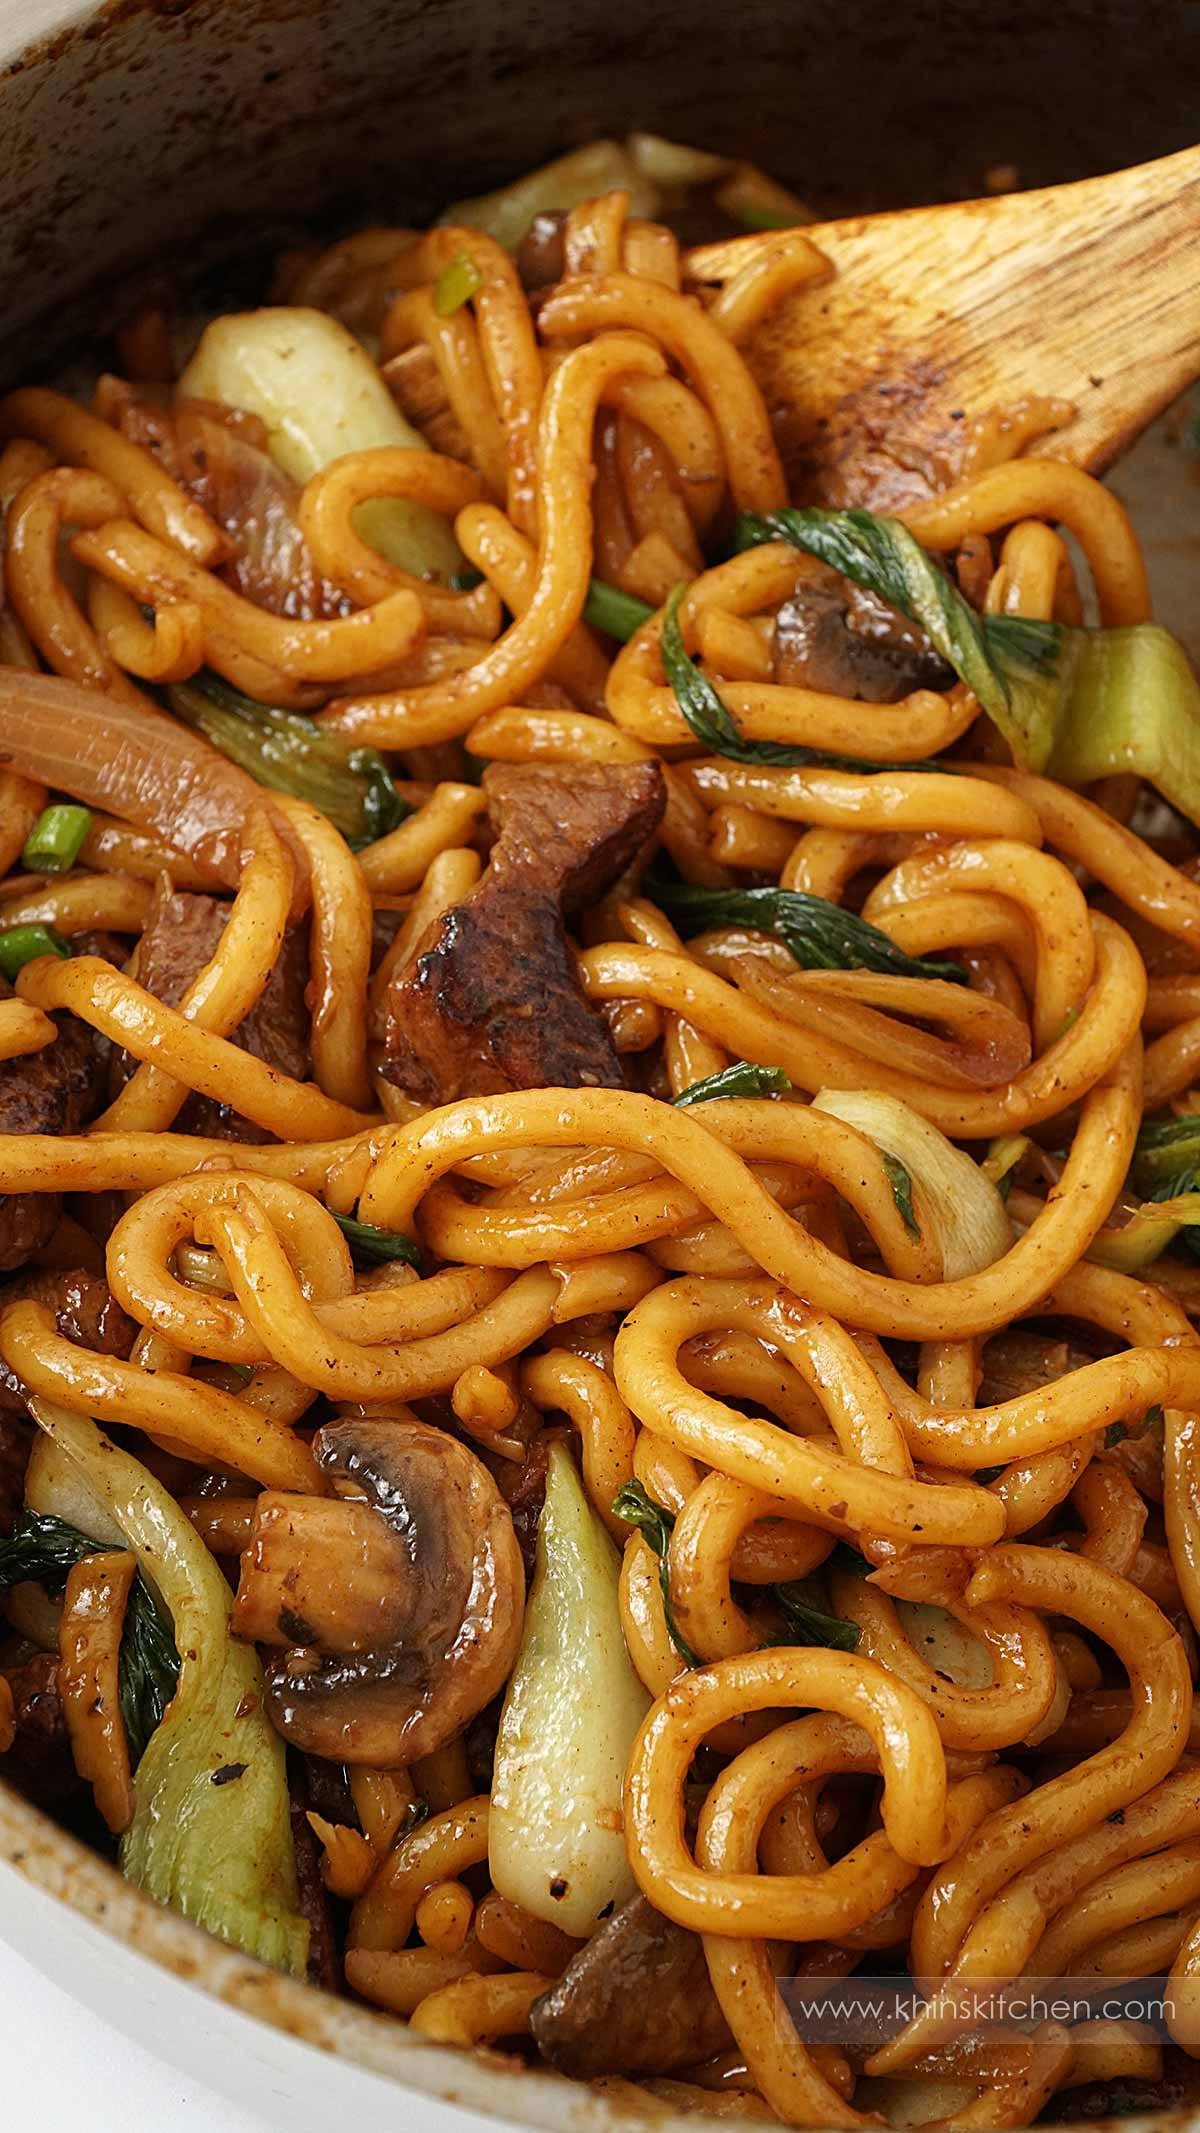 A pan containing stir fry beef, udon noodles, mushroom, green vegetables, and wooden spoon in the background.